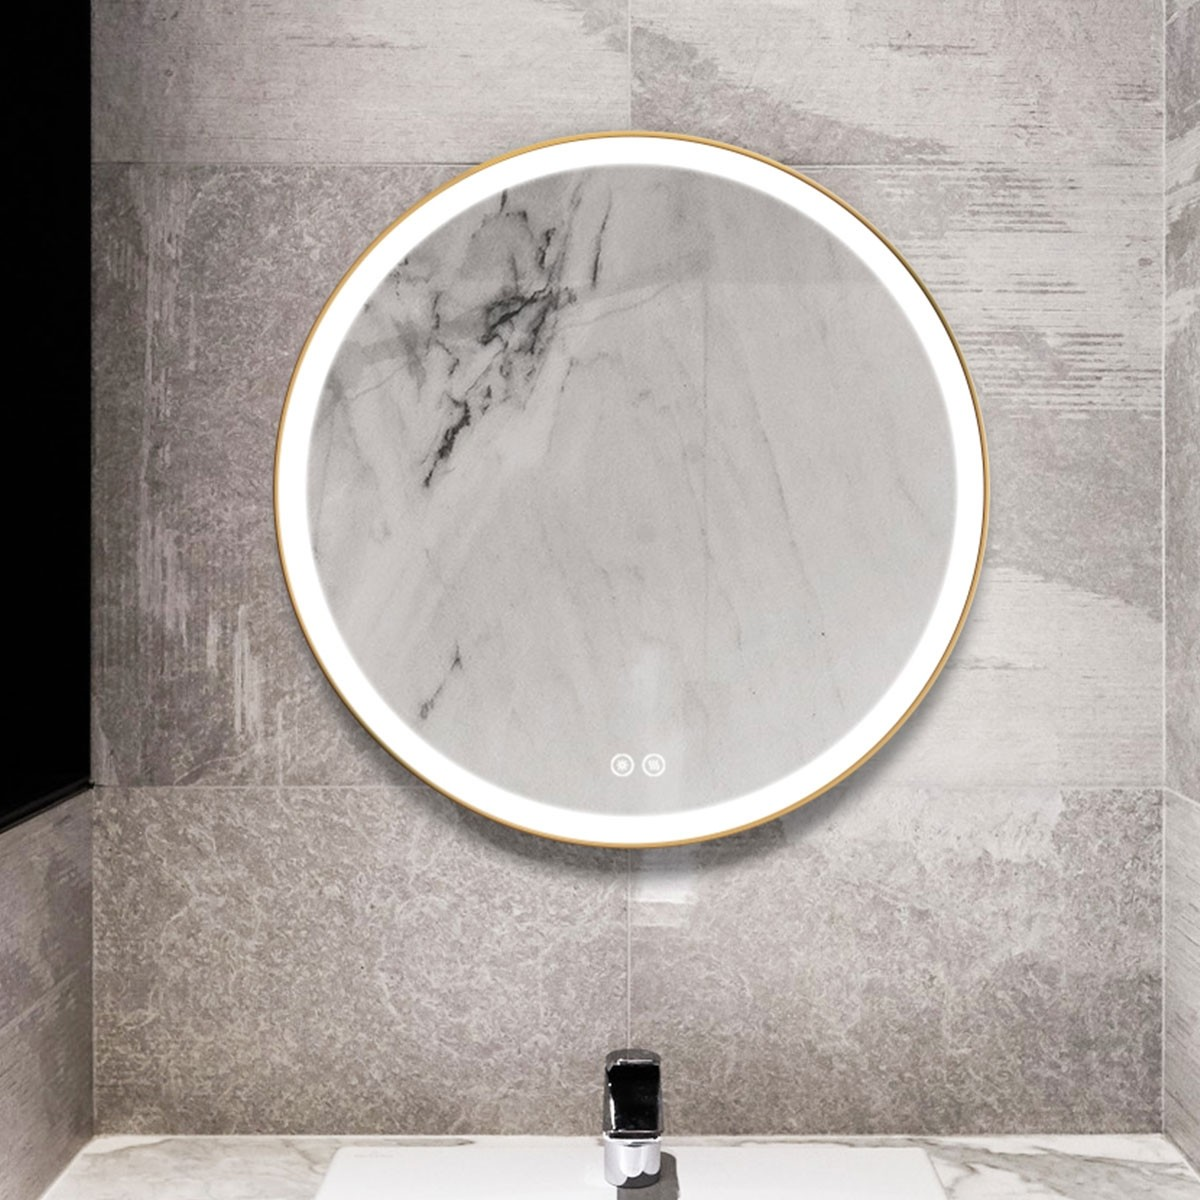 DECORAPORT 28 x 28 Inch LED Bathroom Mirror with Touch Button, Light Luxury Gold, Anti Fog, Dimmable, Vertical Mount (YA-2828-G)